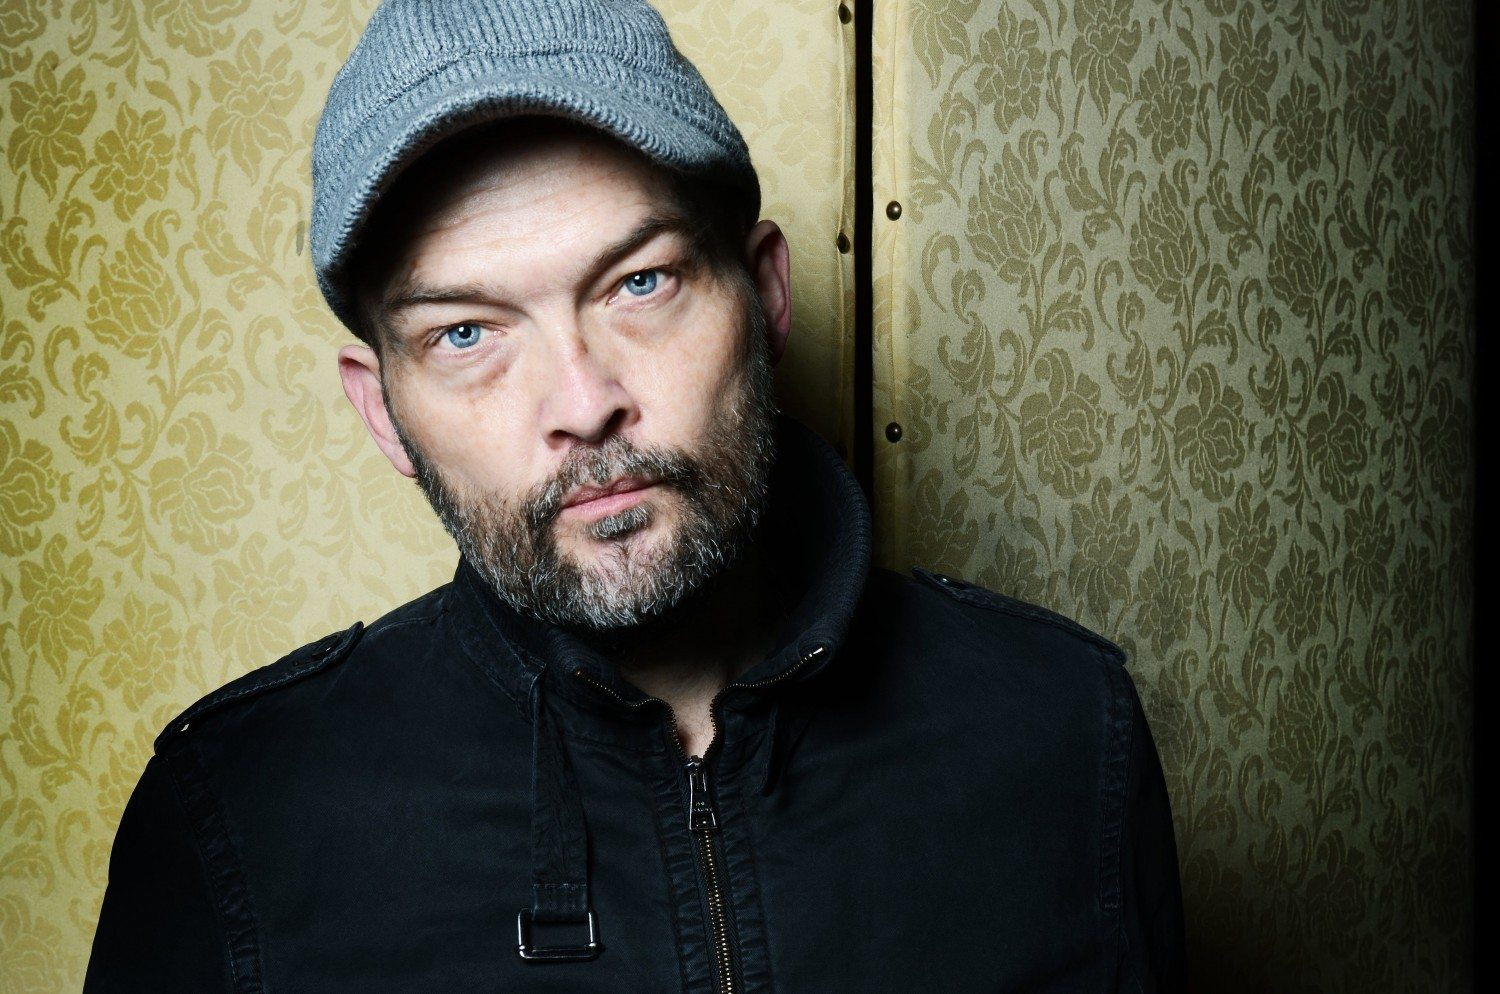 """Ben Watt to play The Mercury Lounge on Jun. 17, talks new album """"Fever Dream,"""" being an author and DJ, and more"""